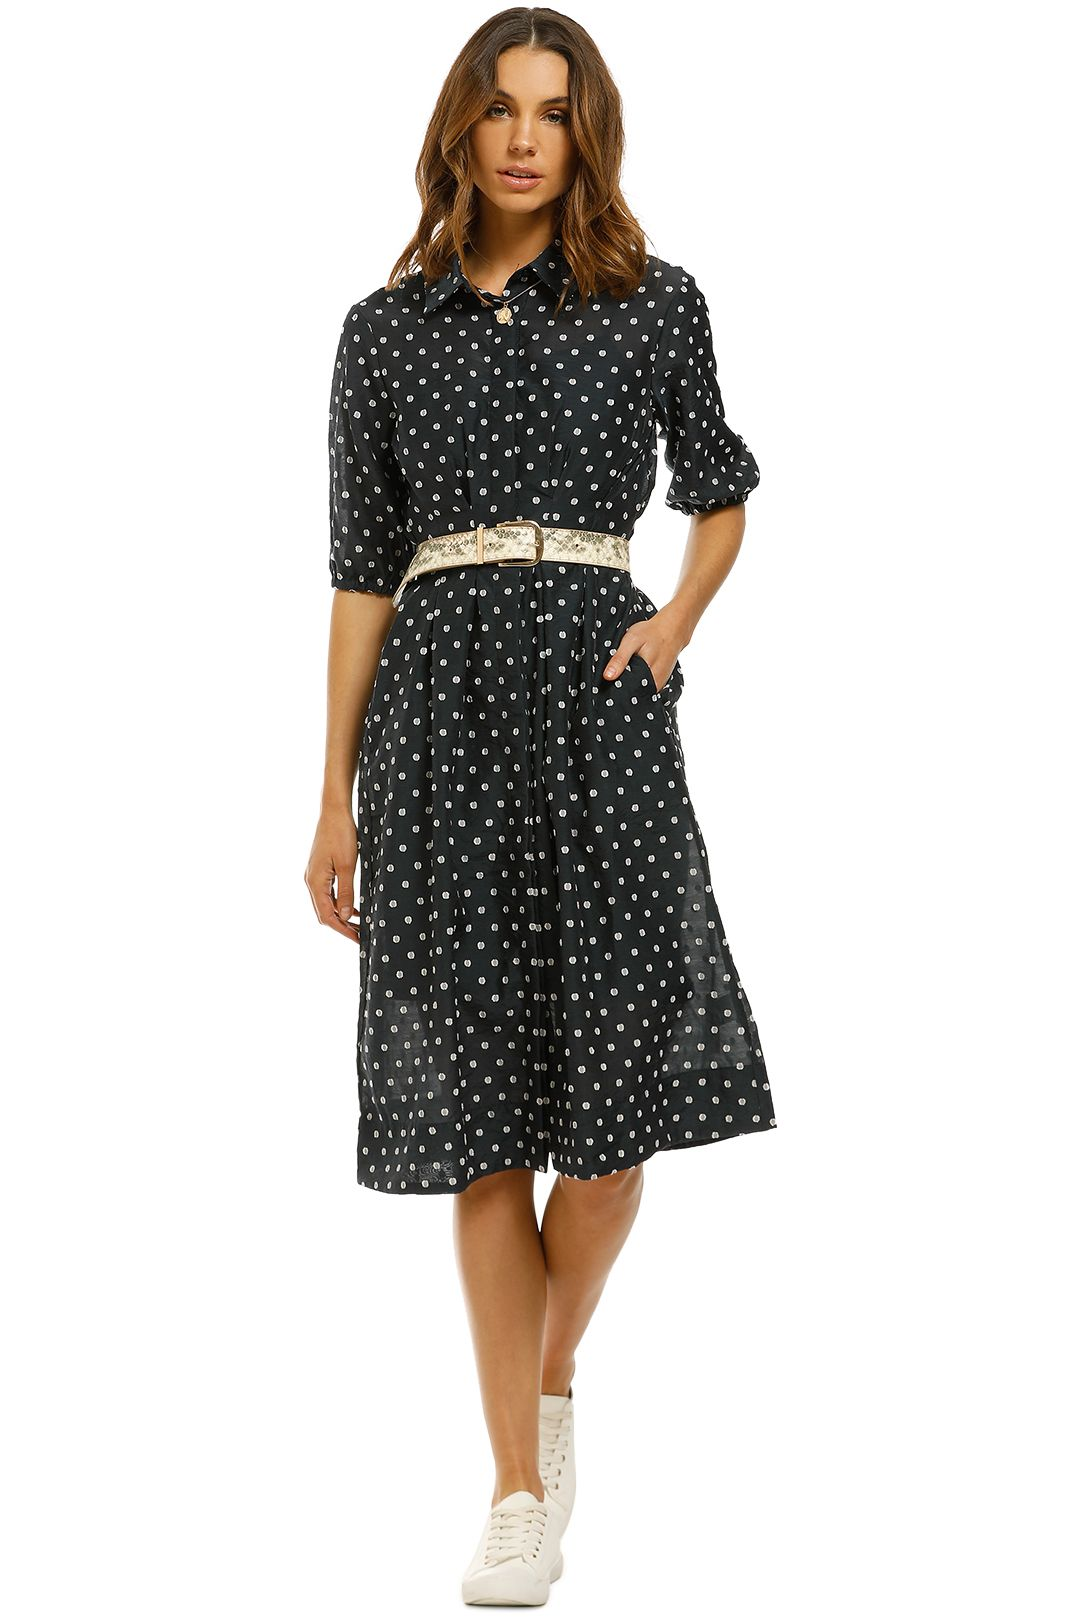 Saints-The-Label-Belfort-Shirt-Dress-Front